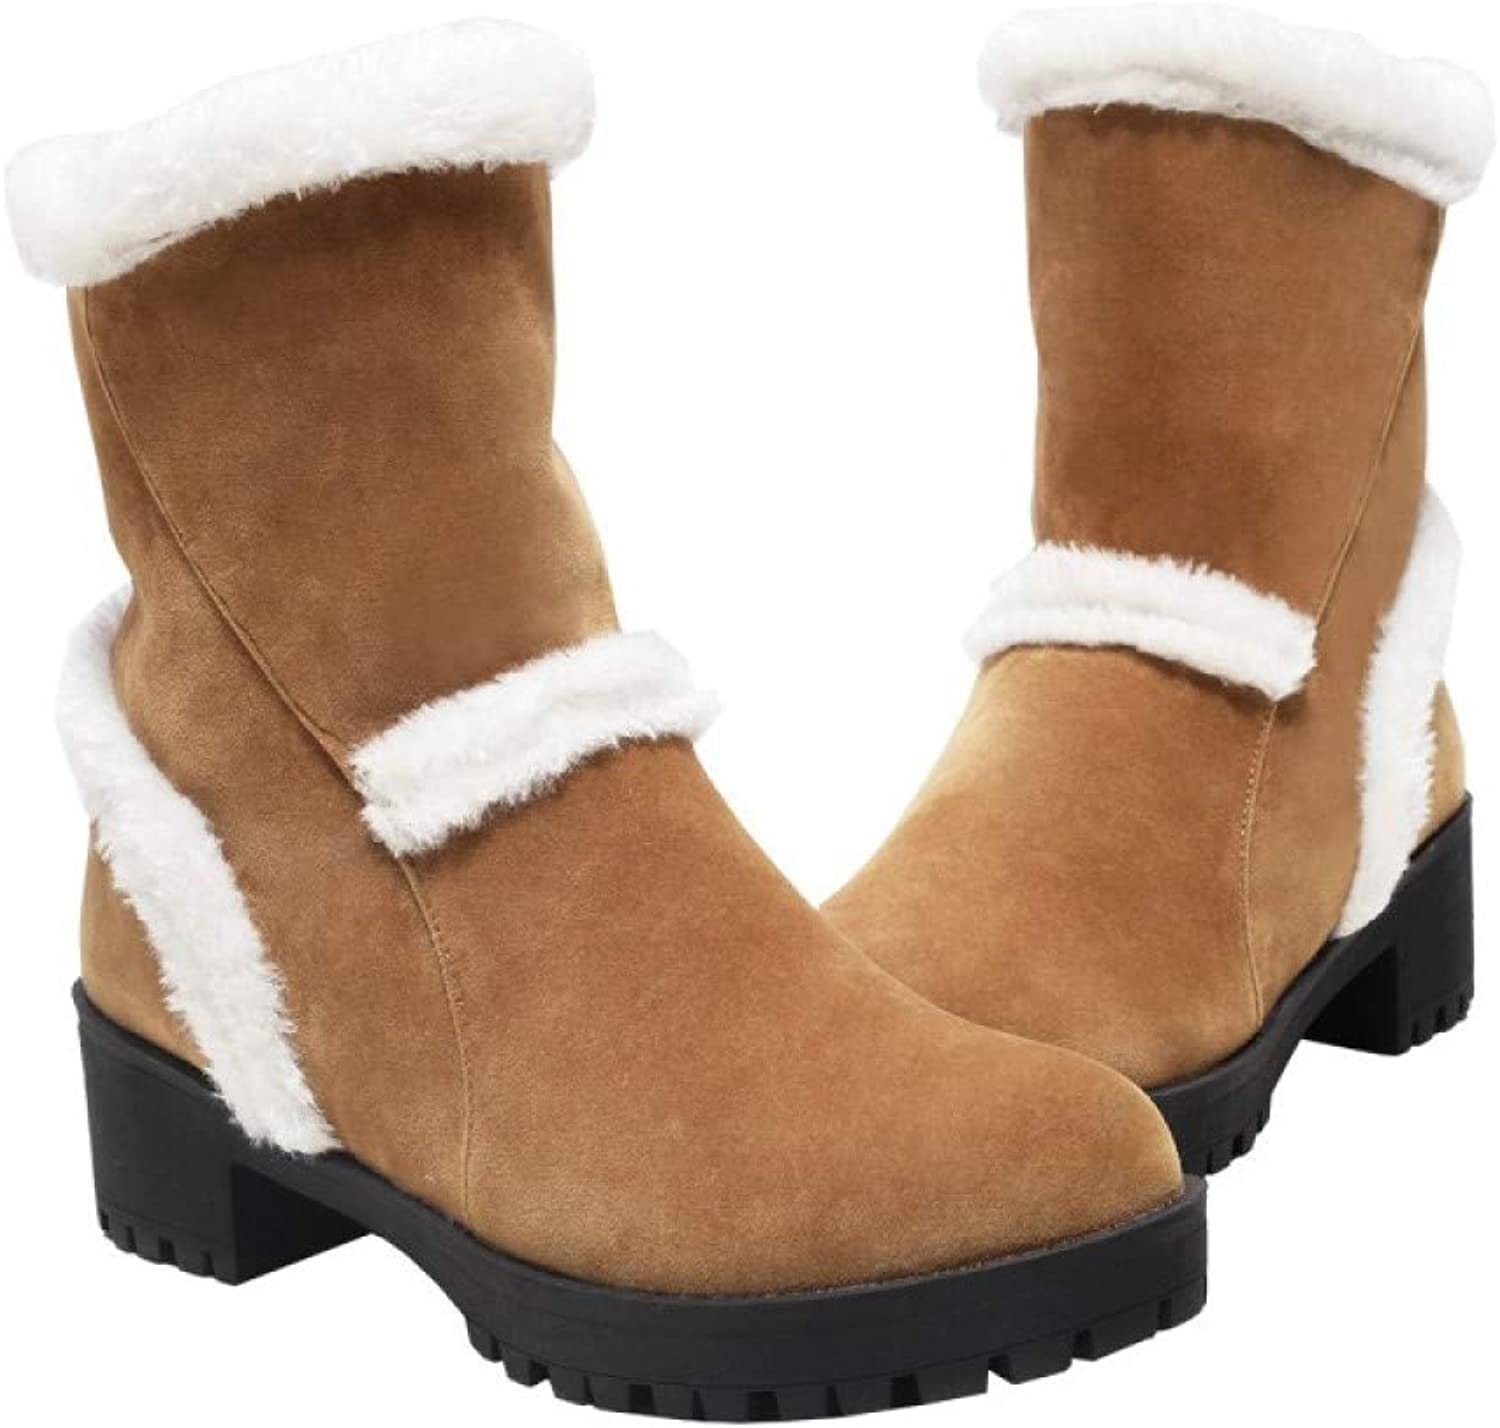 Women Snow Boots,Thick Cotton shoes High-Heeled shoes Fall and Winter Boots for Women